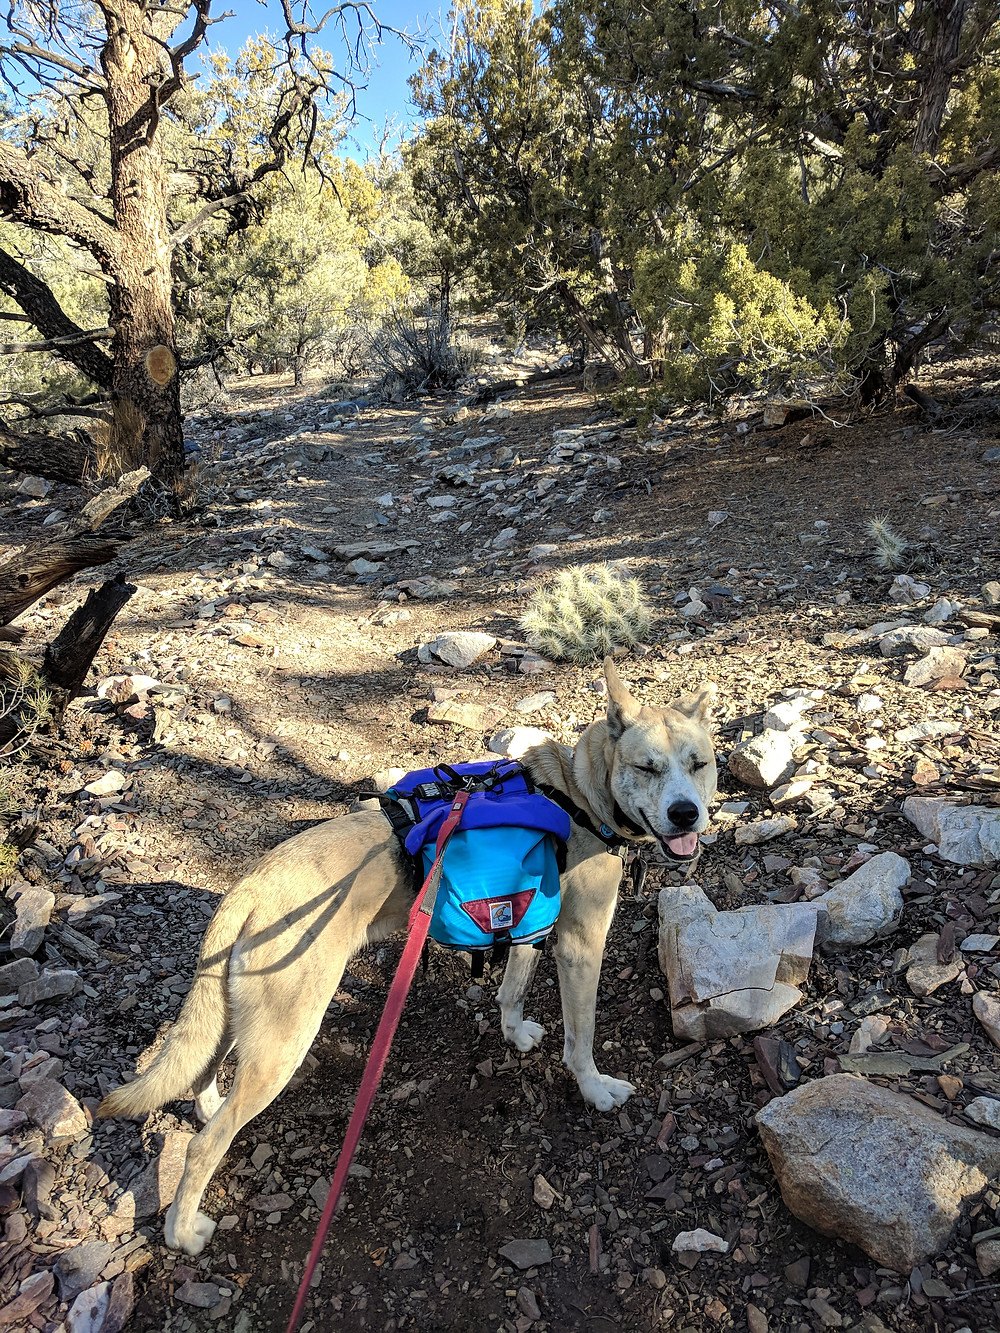 A blond dog wearing a pack looks at the camera and squints, Piñon-juniper forest in the background. Photo by Tenley Lozano.